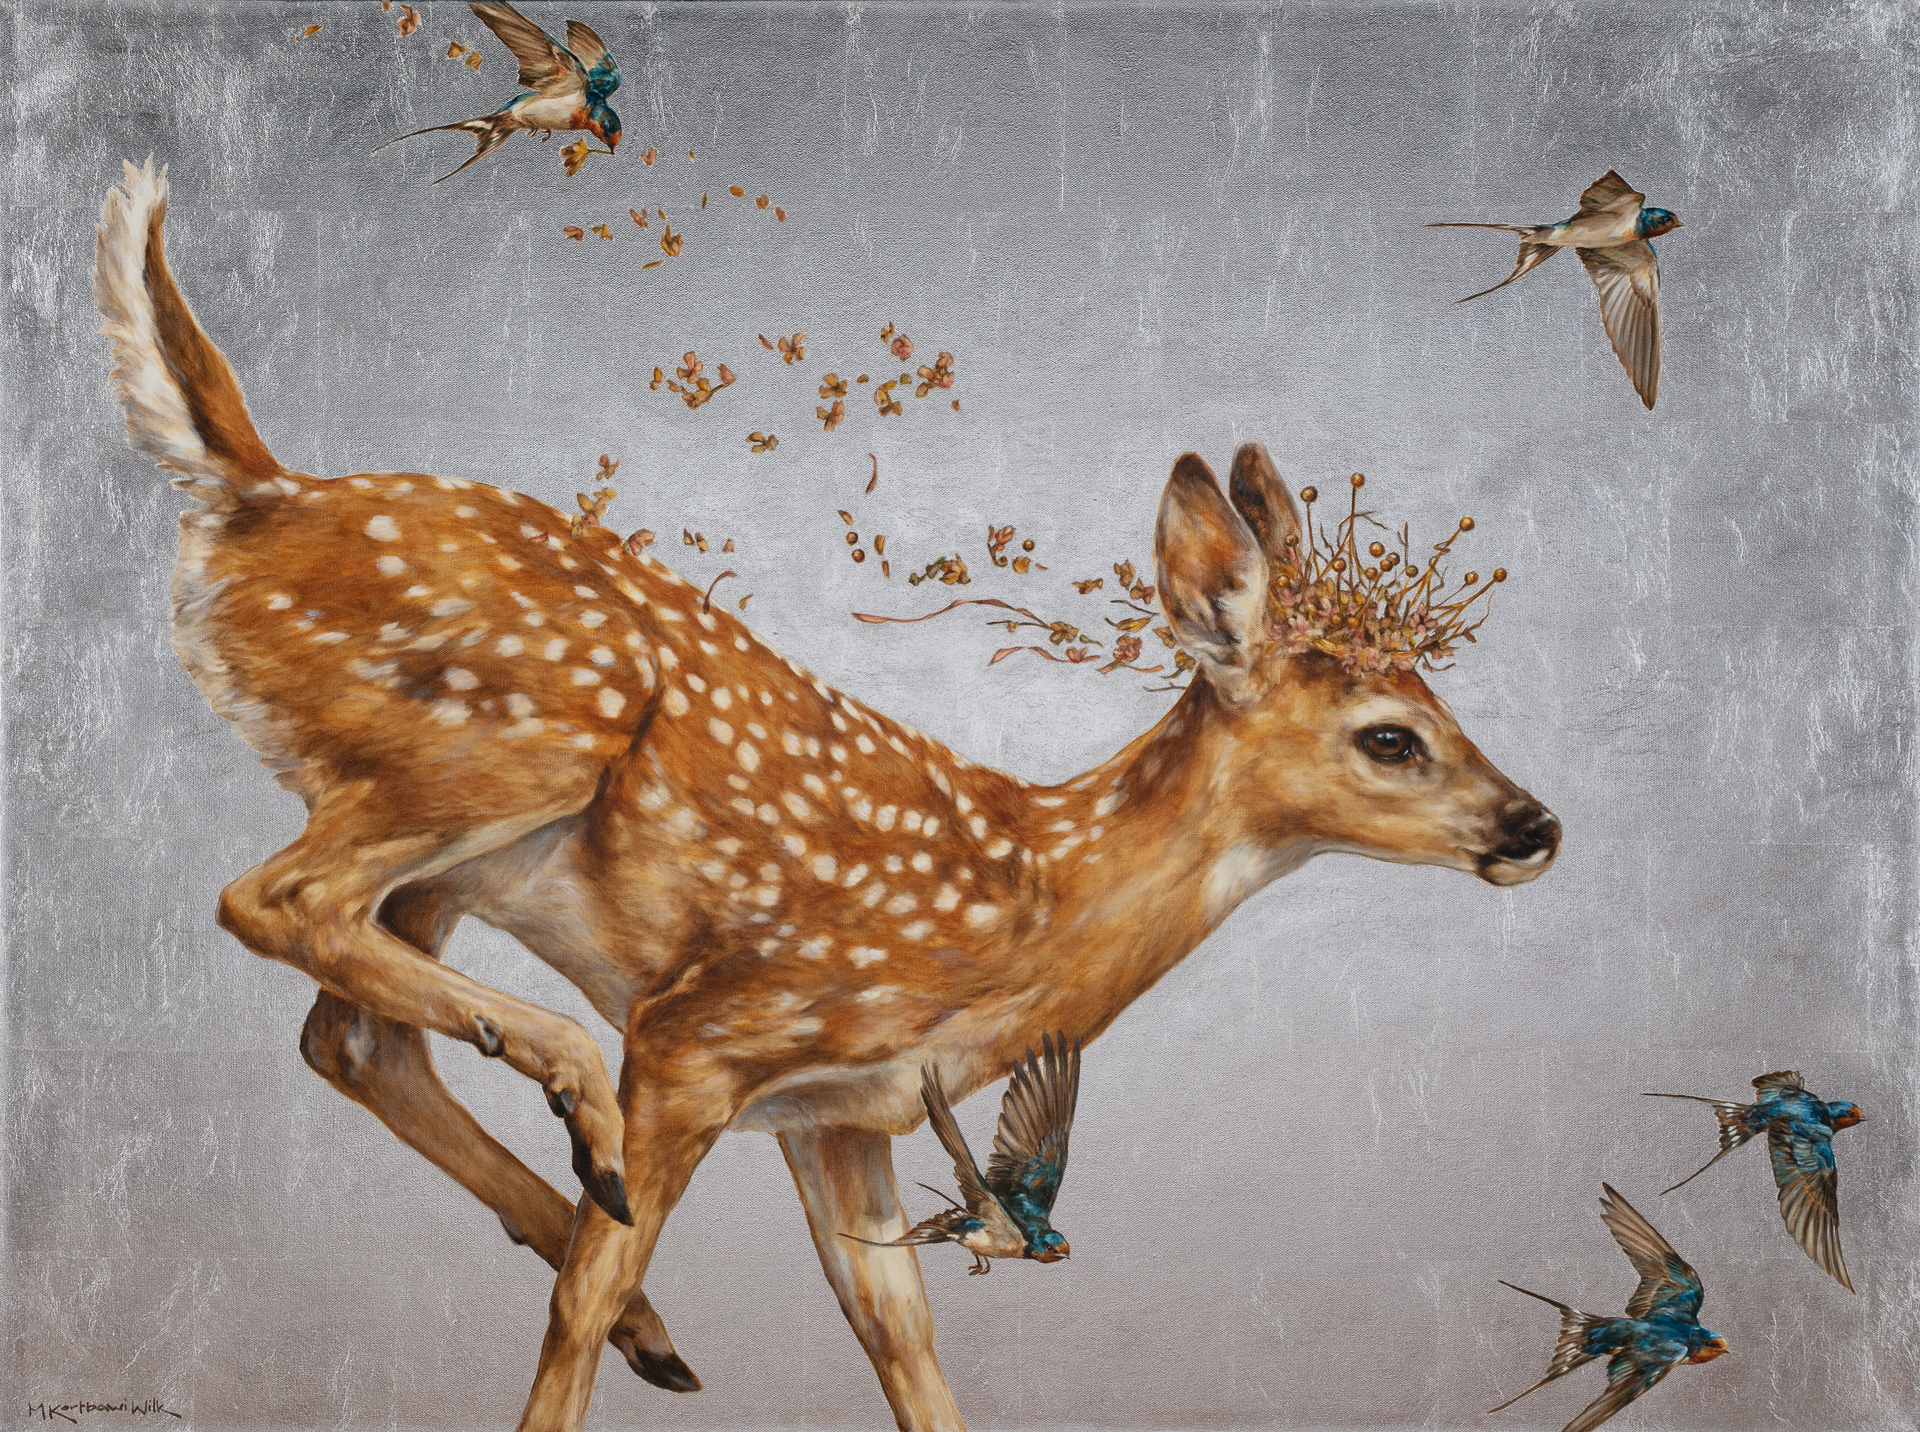 When the Deer Play by Michele Kortbawi Wilk